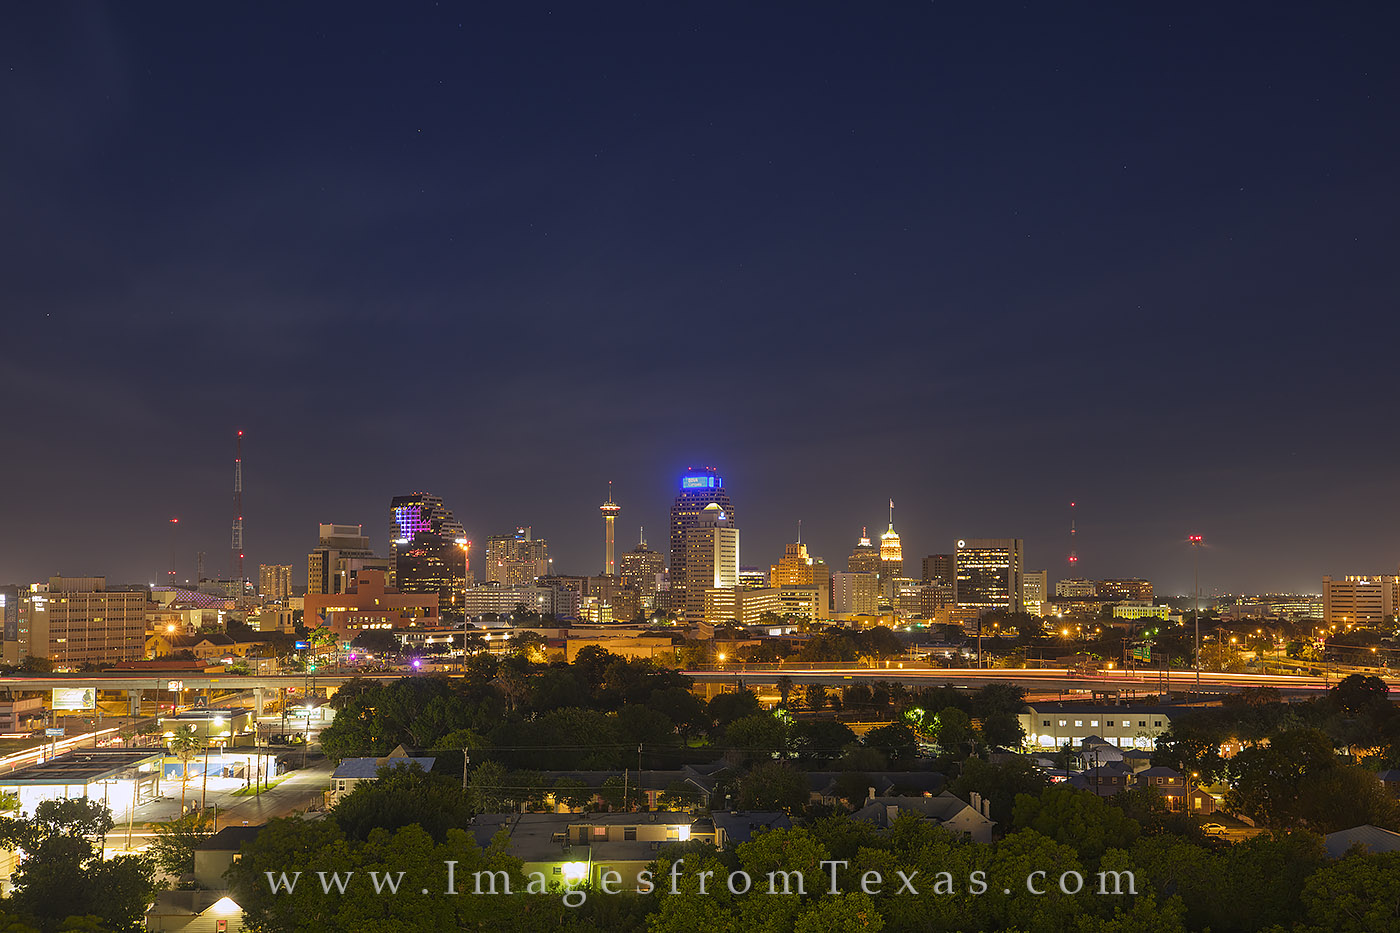 san antonio skyline, san antonio photos, san antonio cityscape, downtown san antonio, san antonio images, san antonio at night, nighttime in San Antonio, photo